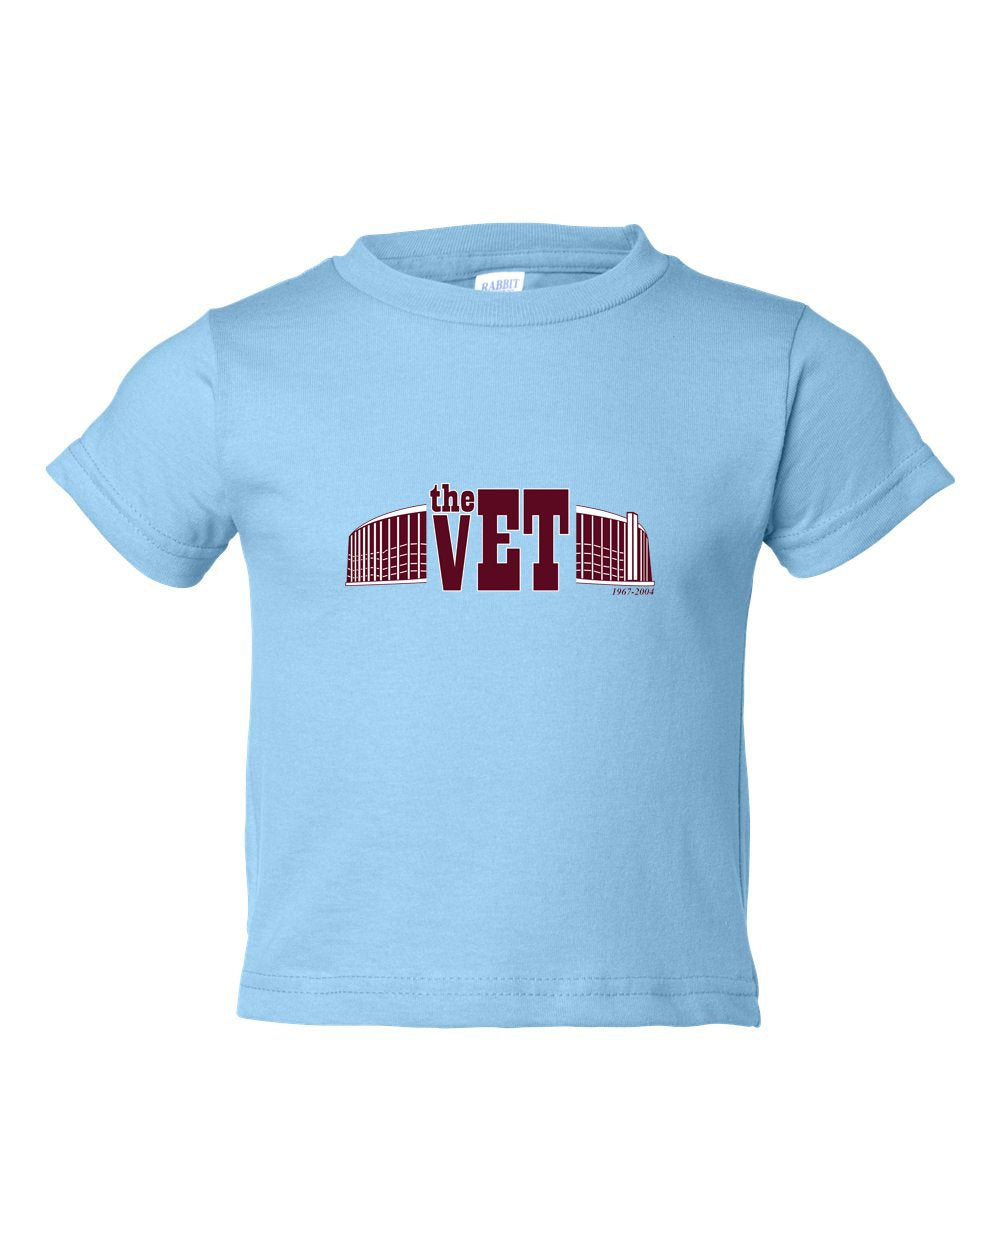 The Vet (Baseball) TODDLER T-Shirt